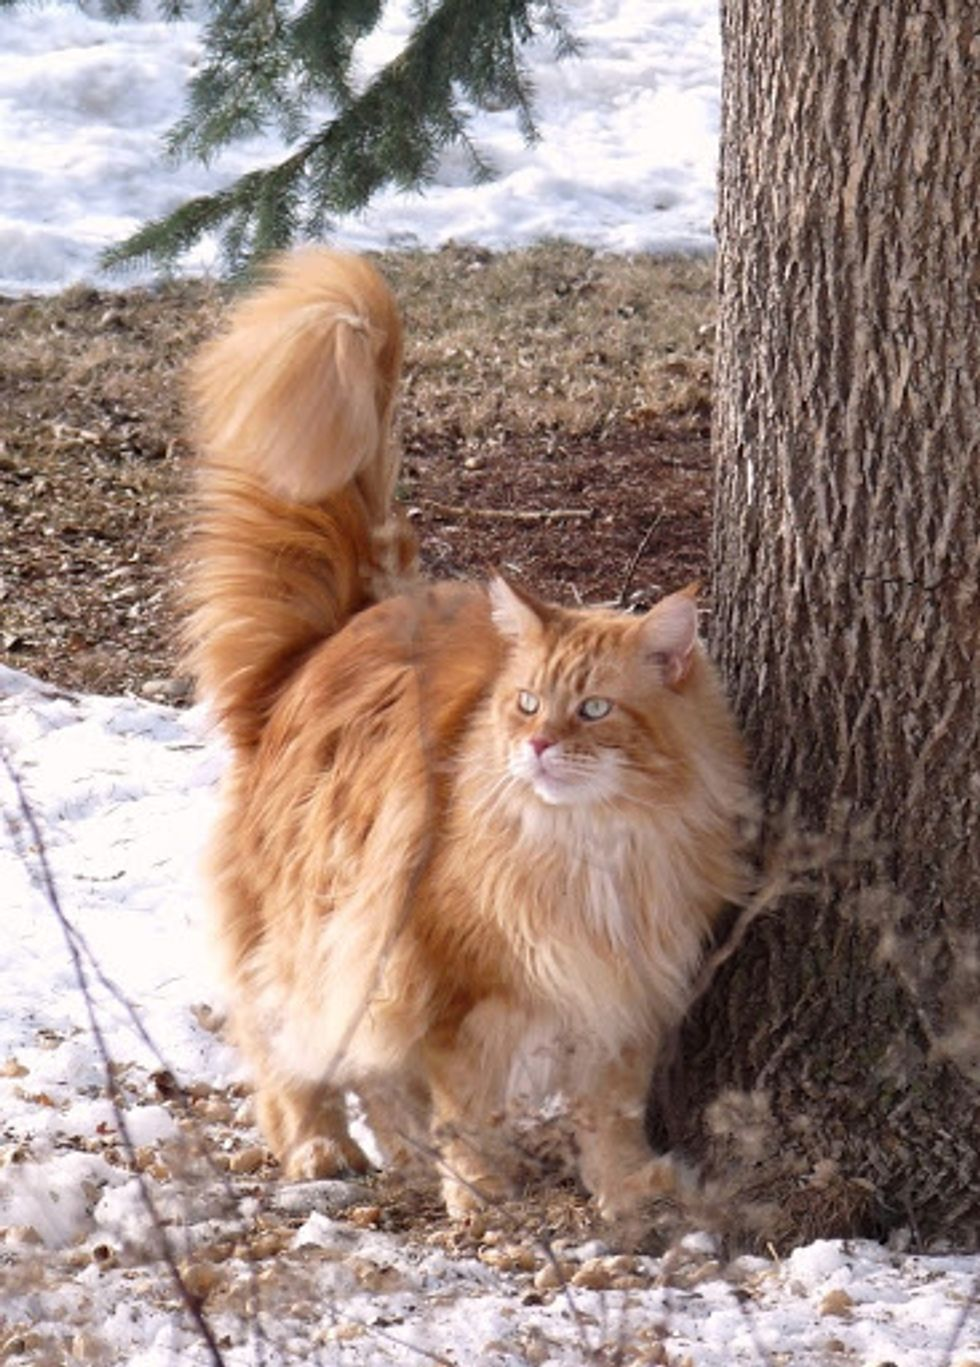 February Cat of the Month Results